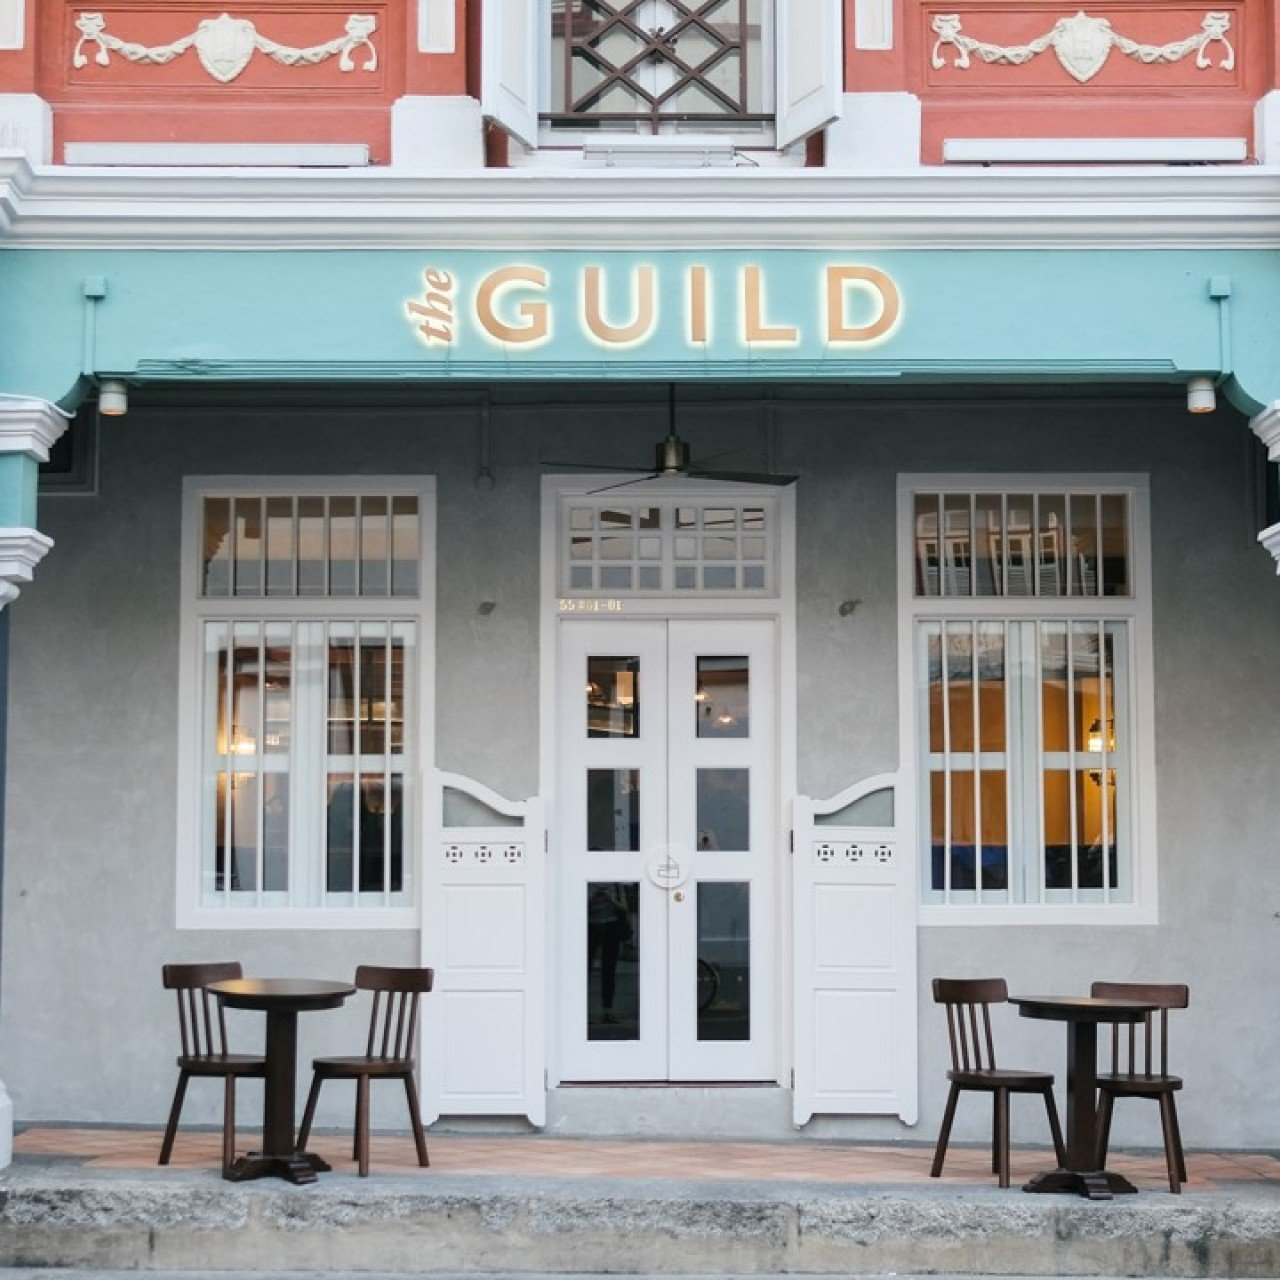 New Singapore restaurants: chefs' cultural heritage celebrated at